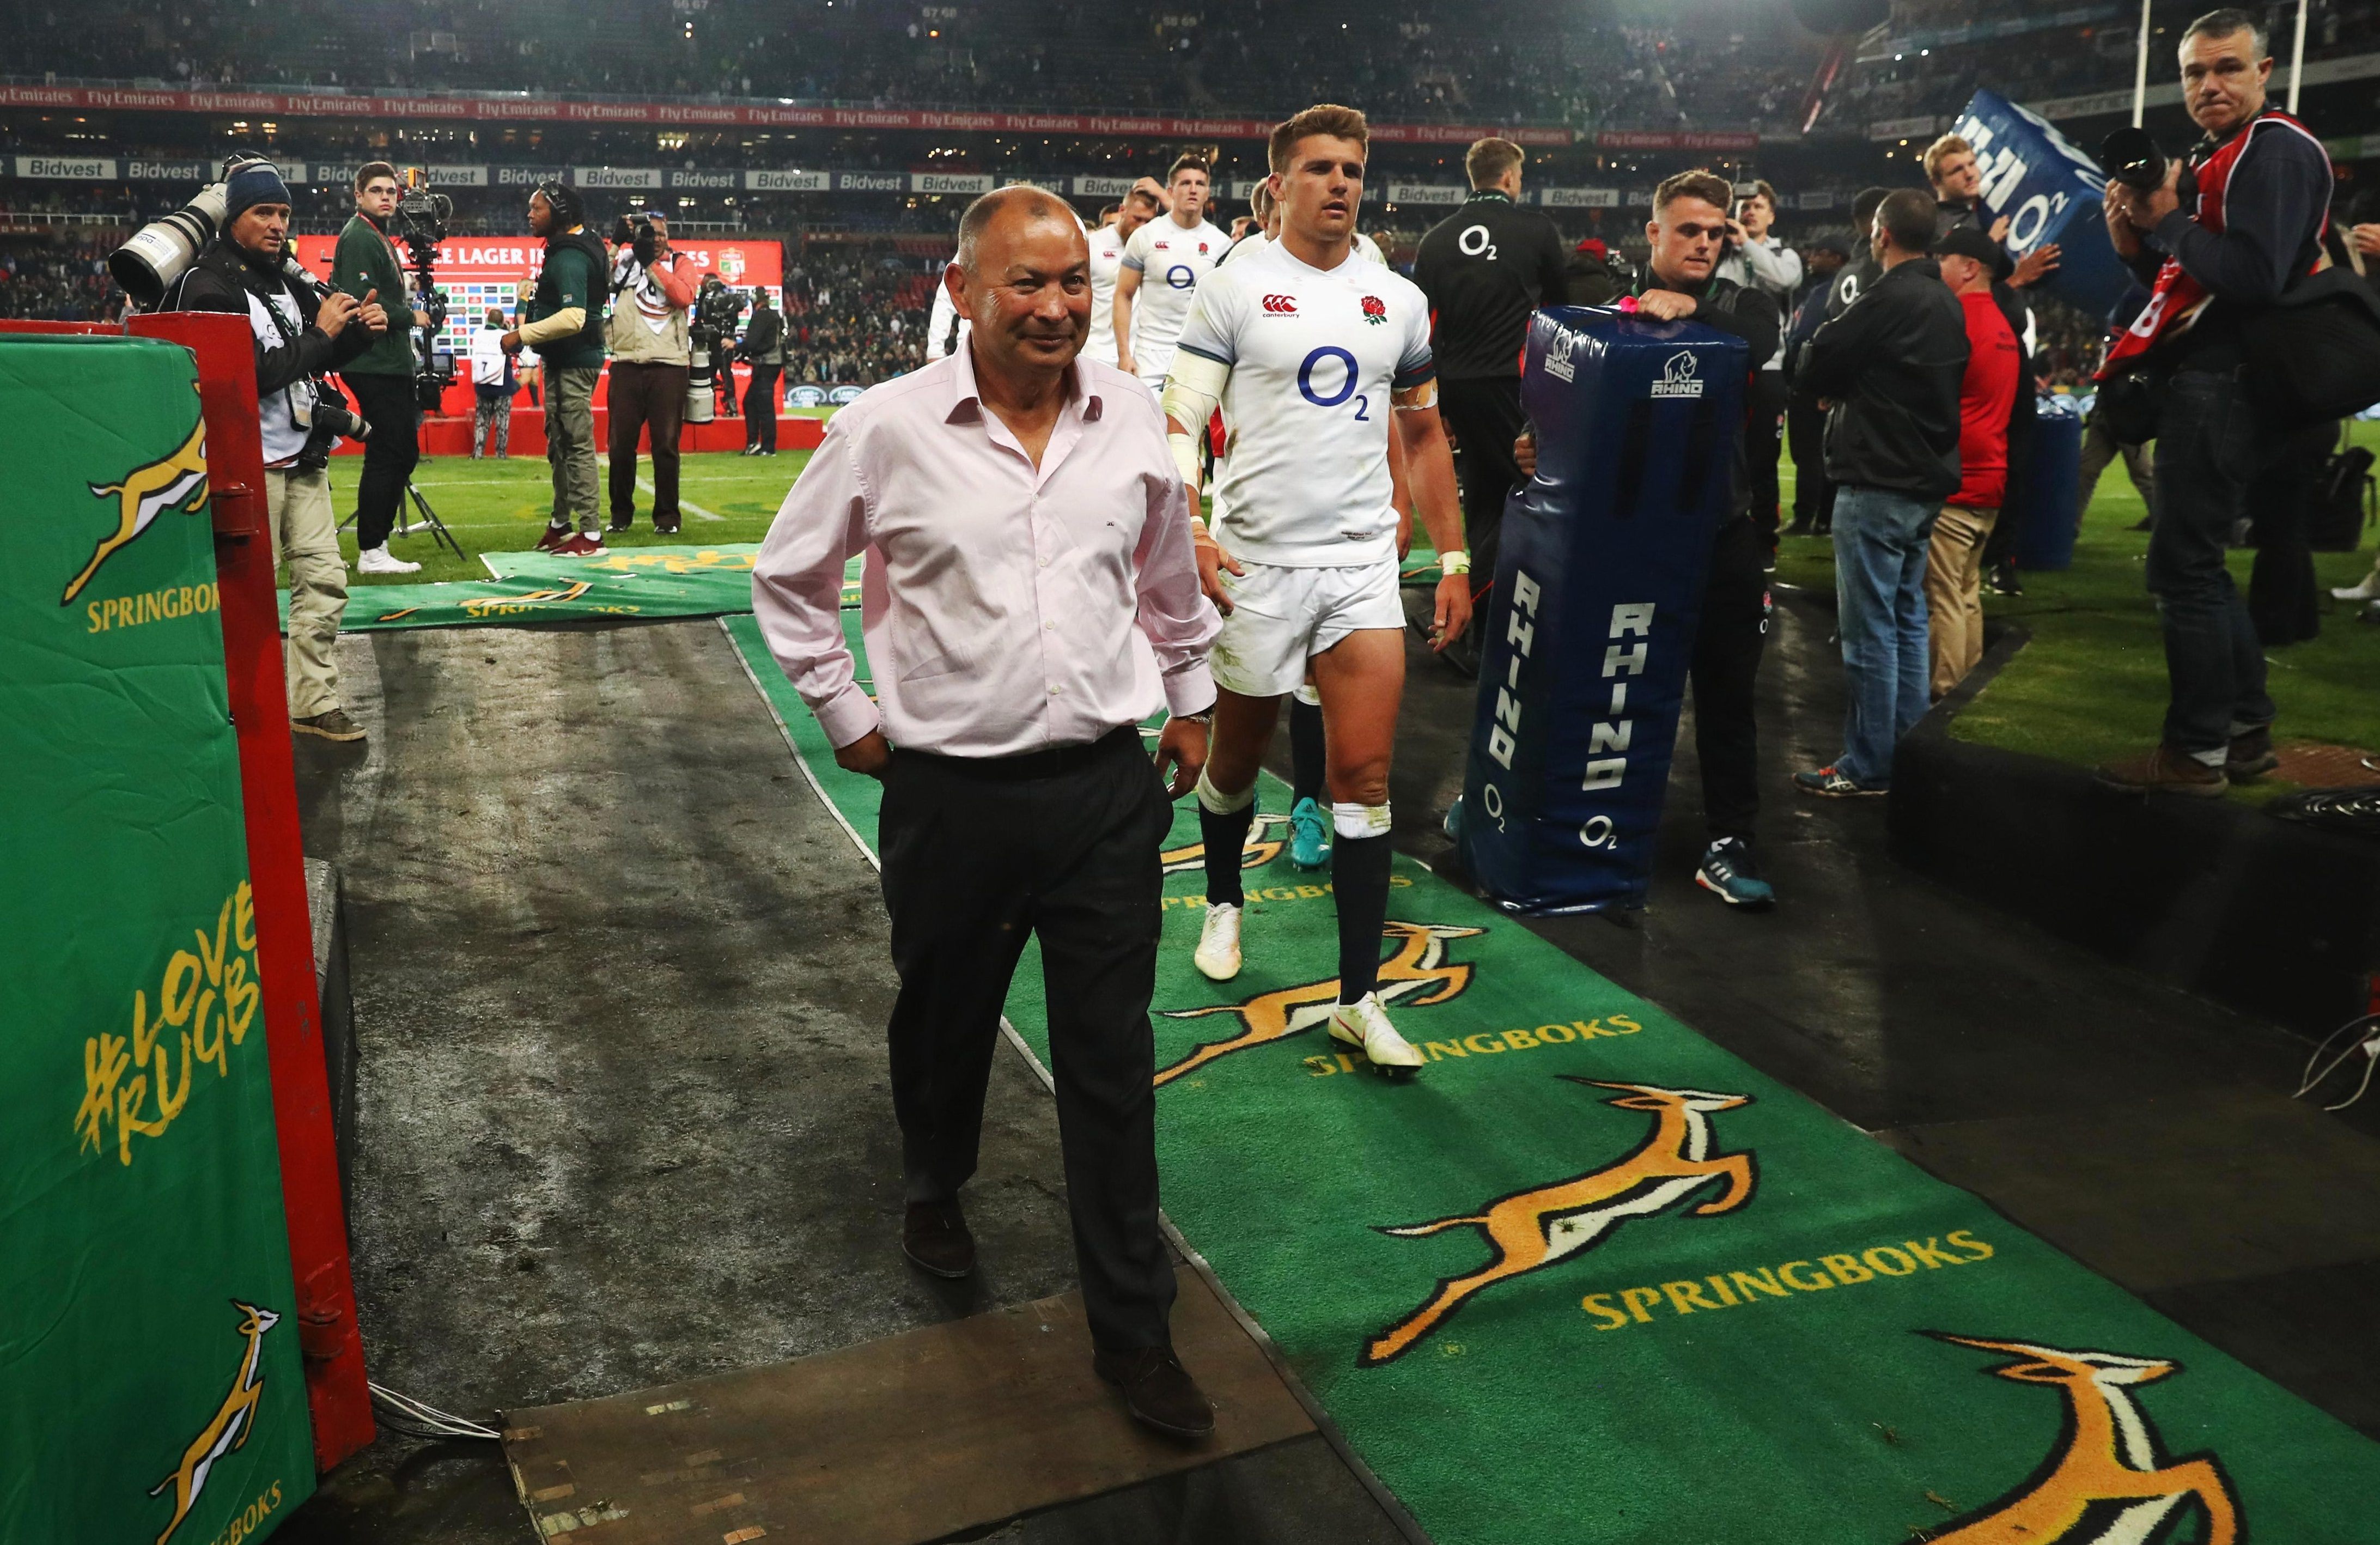 South Africa fans gave Eddie Jones some stick as he went down the tunnel